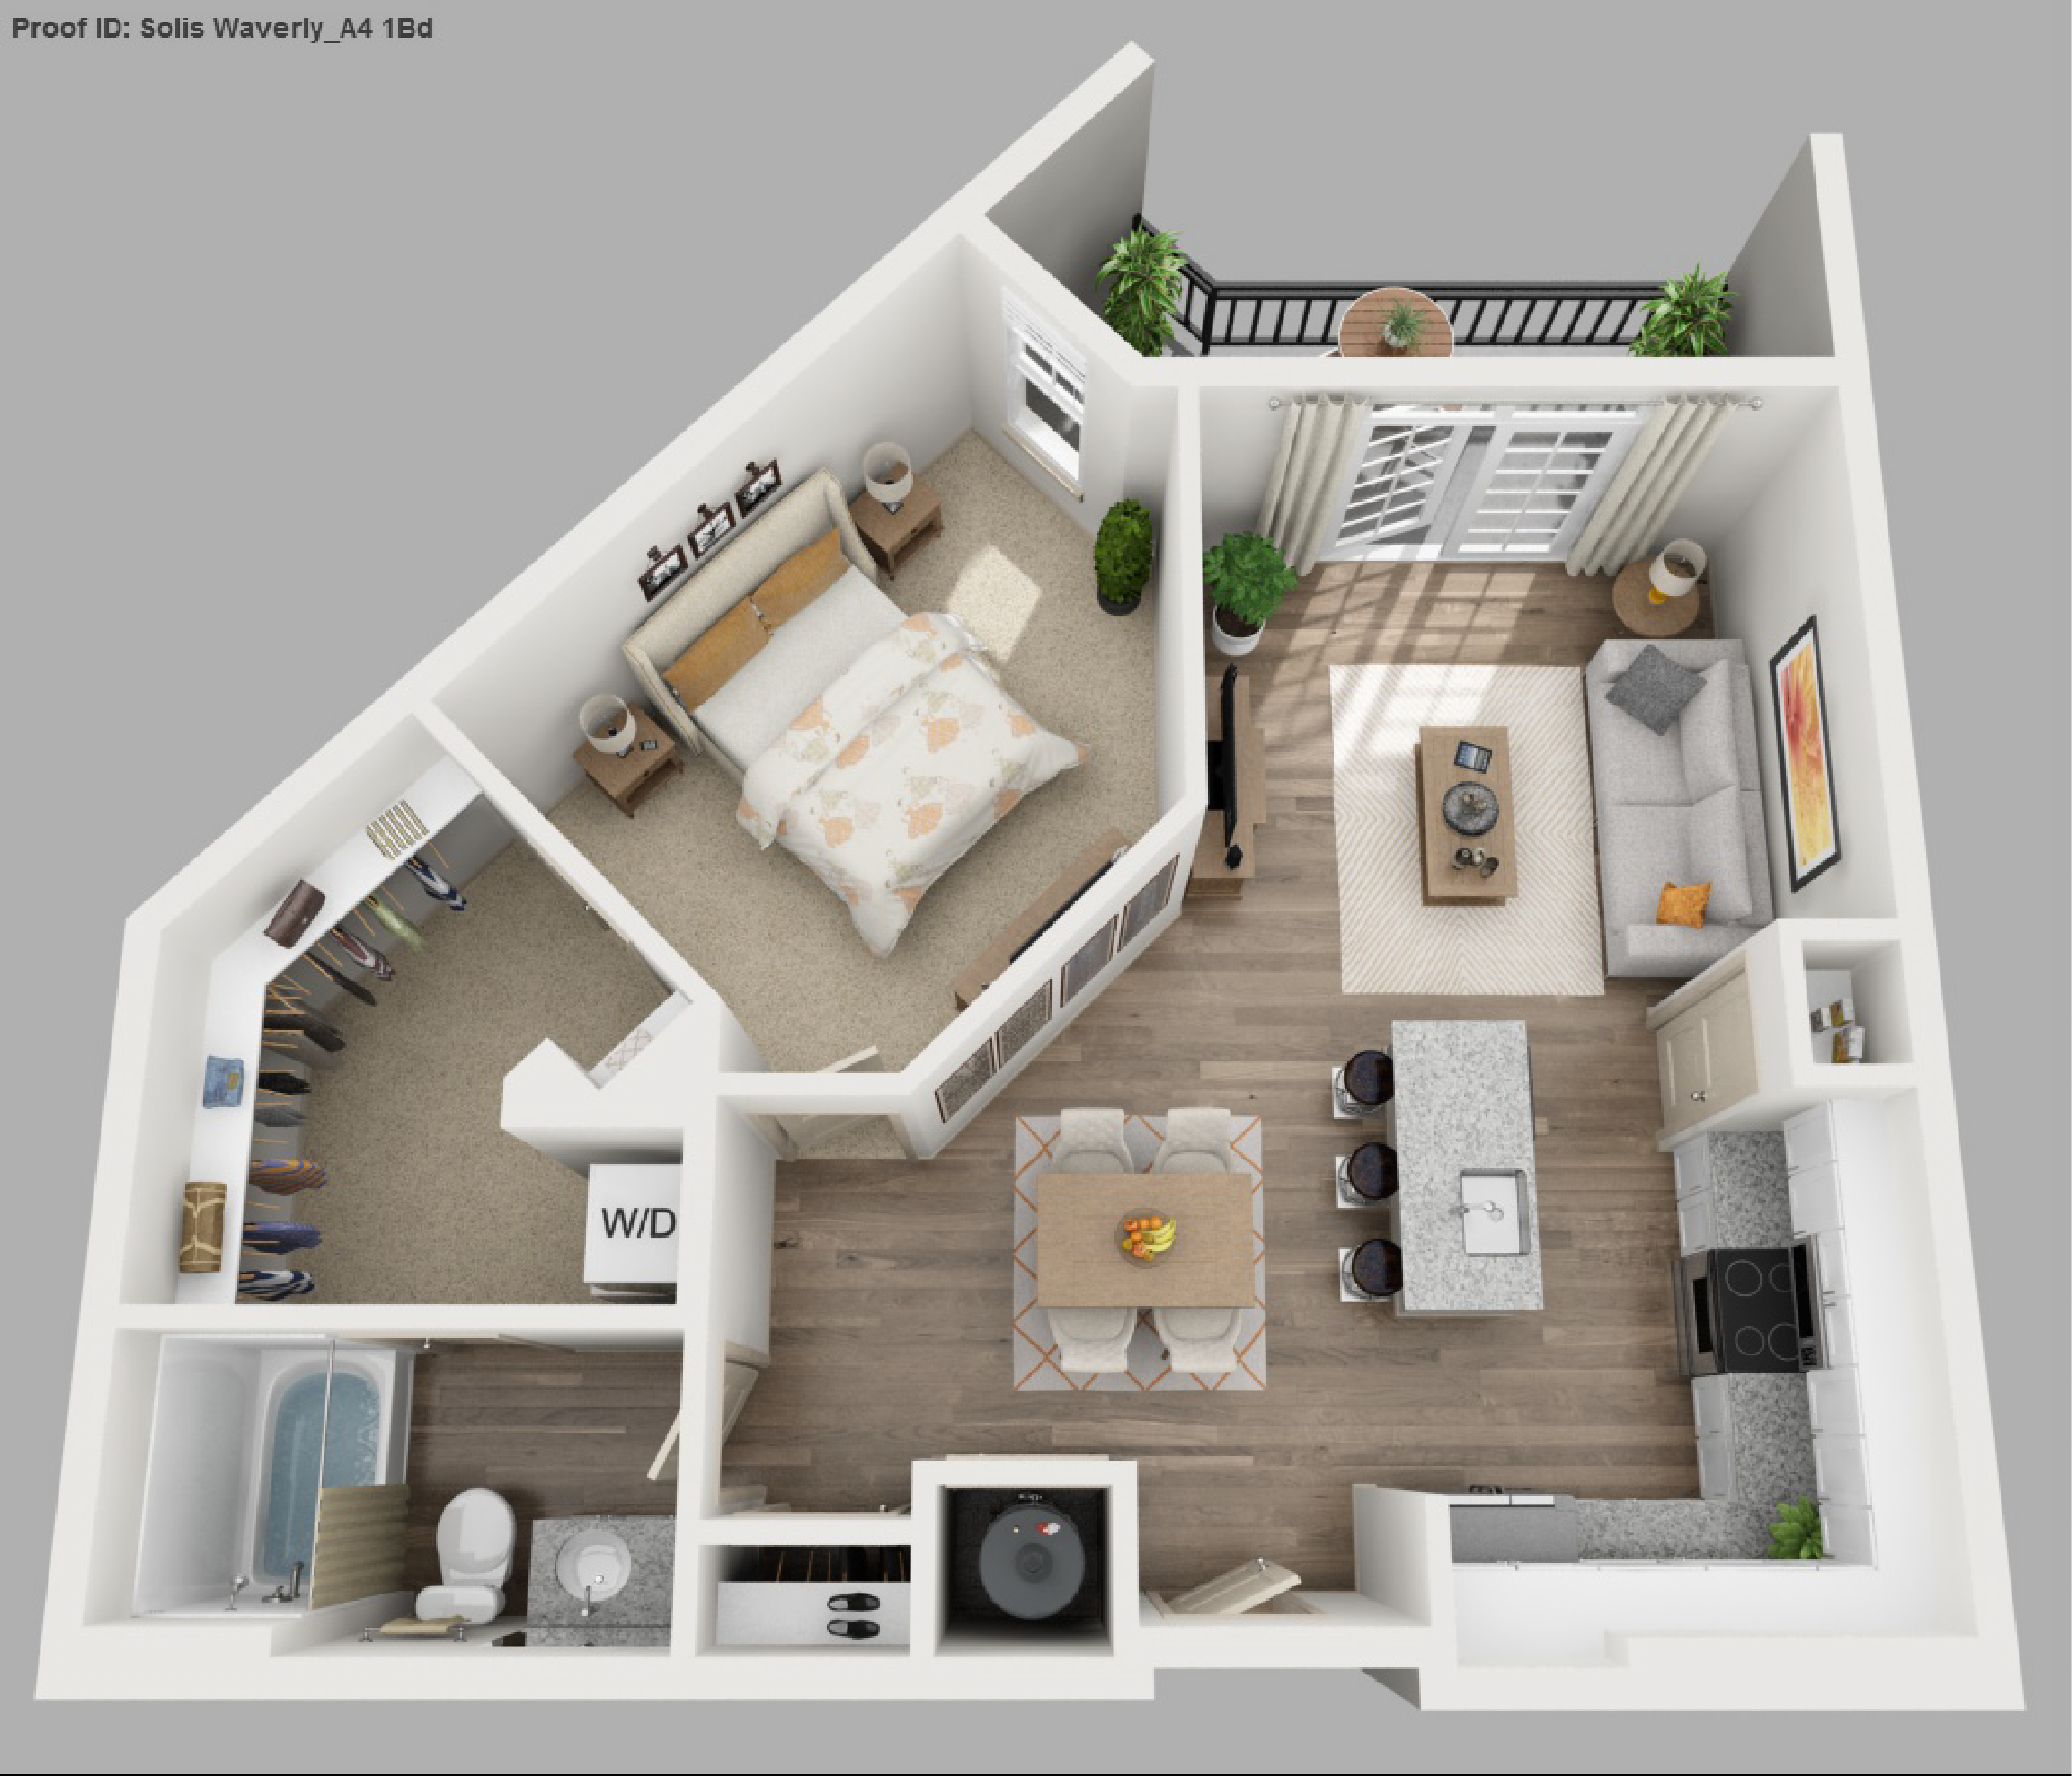 Solis apartments floorplans waverly 1 bedroom houses